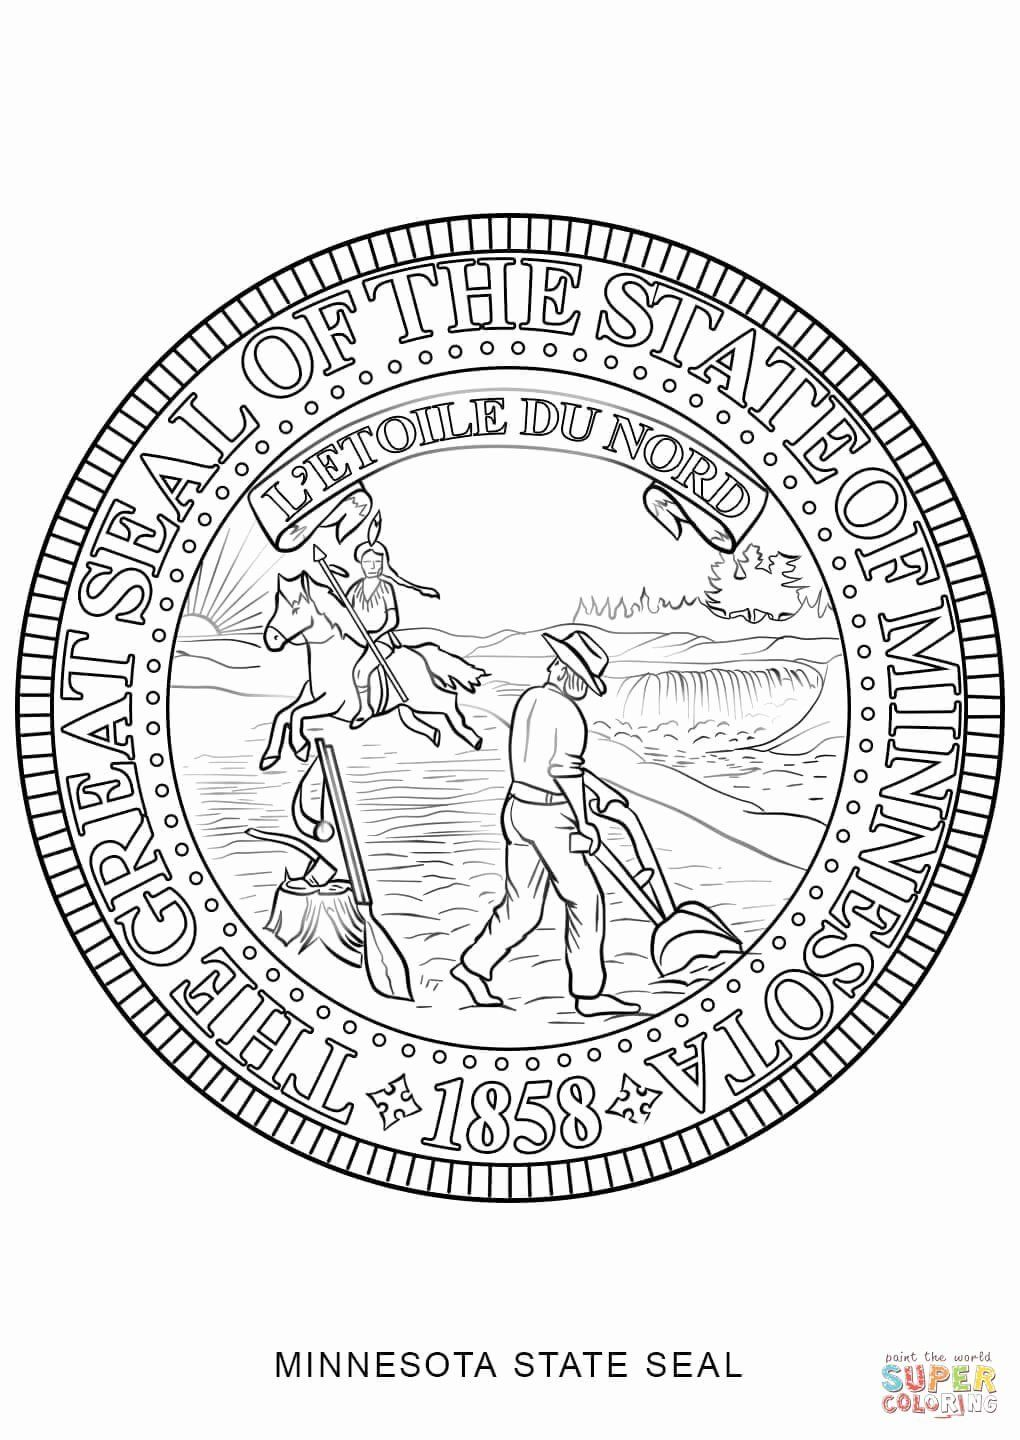 Montana Flag Coloring Page Lovely Minnesota State Seal Coloring Page Flag Coloring Pages Coloring Pages Minnesota State Flag